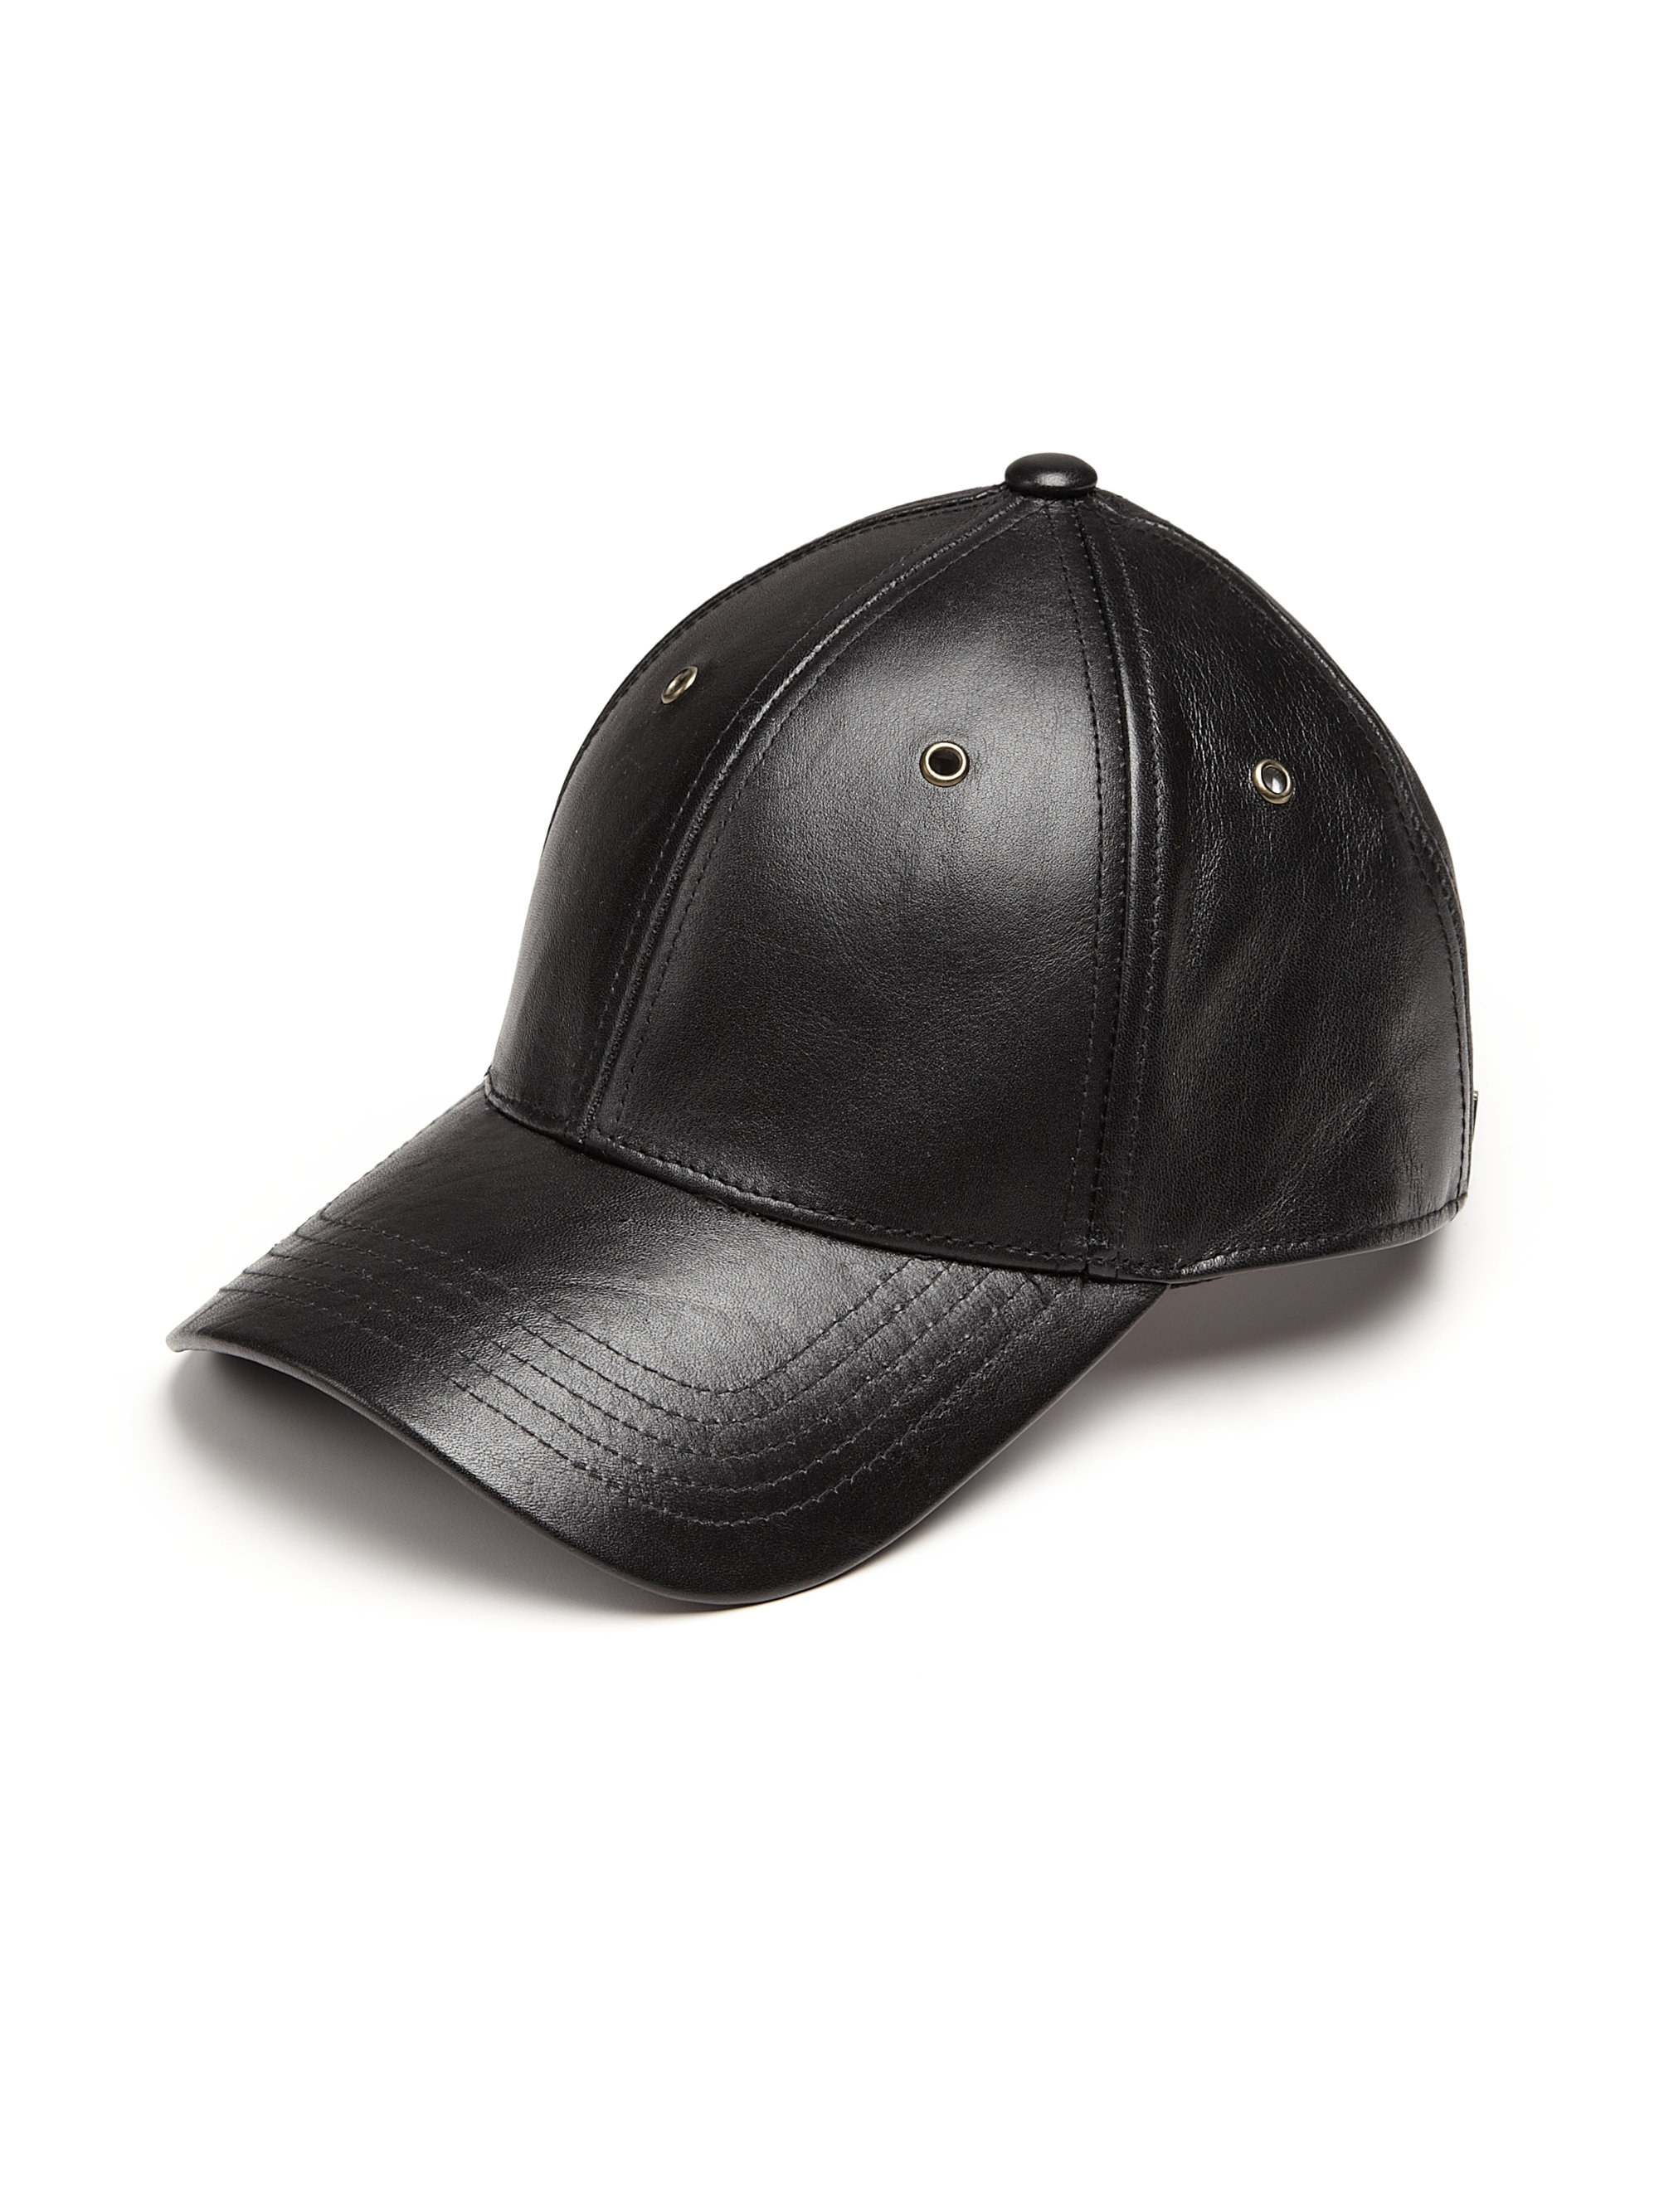 Lyst - Marc By Marc Jacobs Leather Baseball Cap in Black for Men 337bceb497f